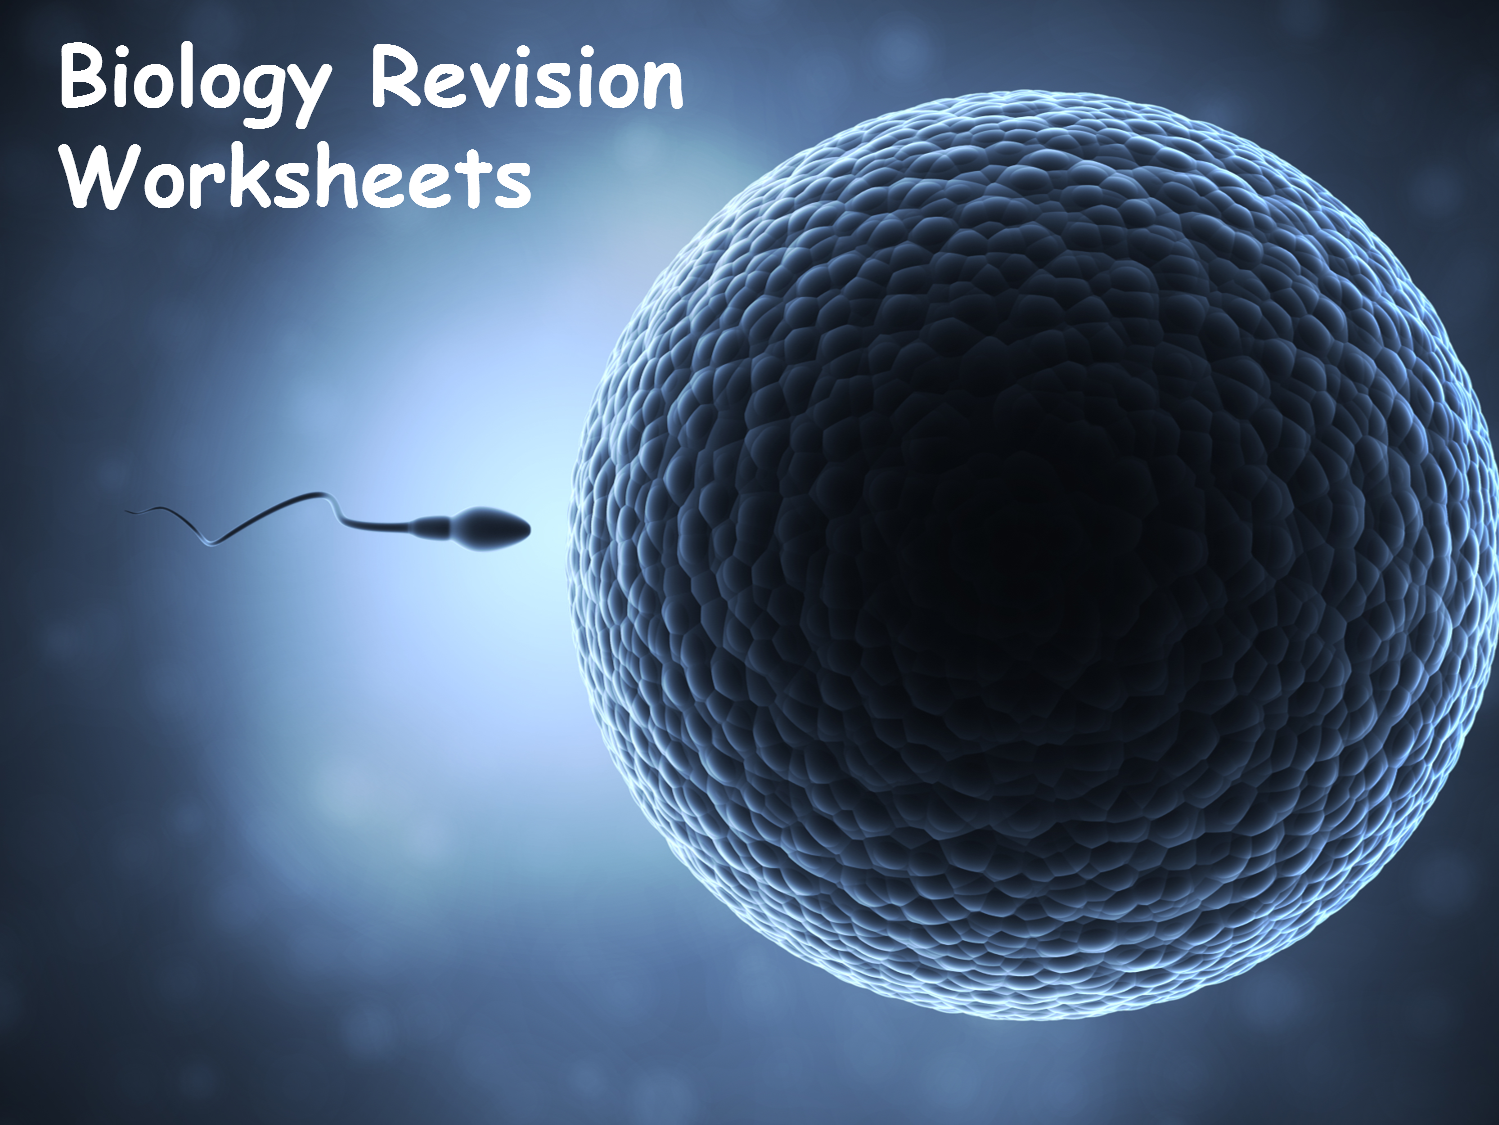 Edexcel Combined Science Biology Revision Worksheets